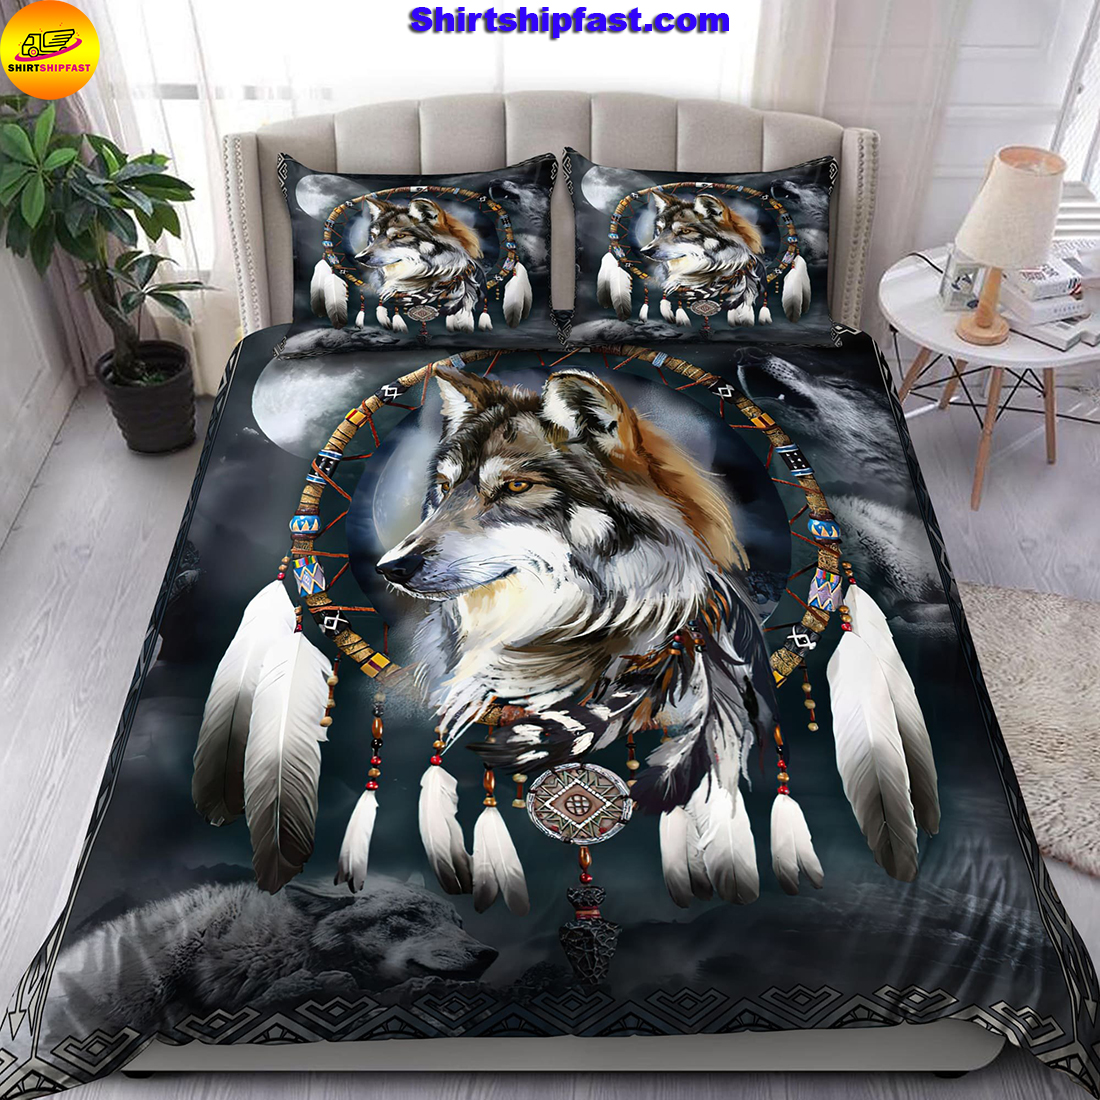 Wolf native american 3D all over printed bedding set - Picture 1